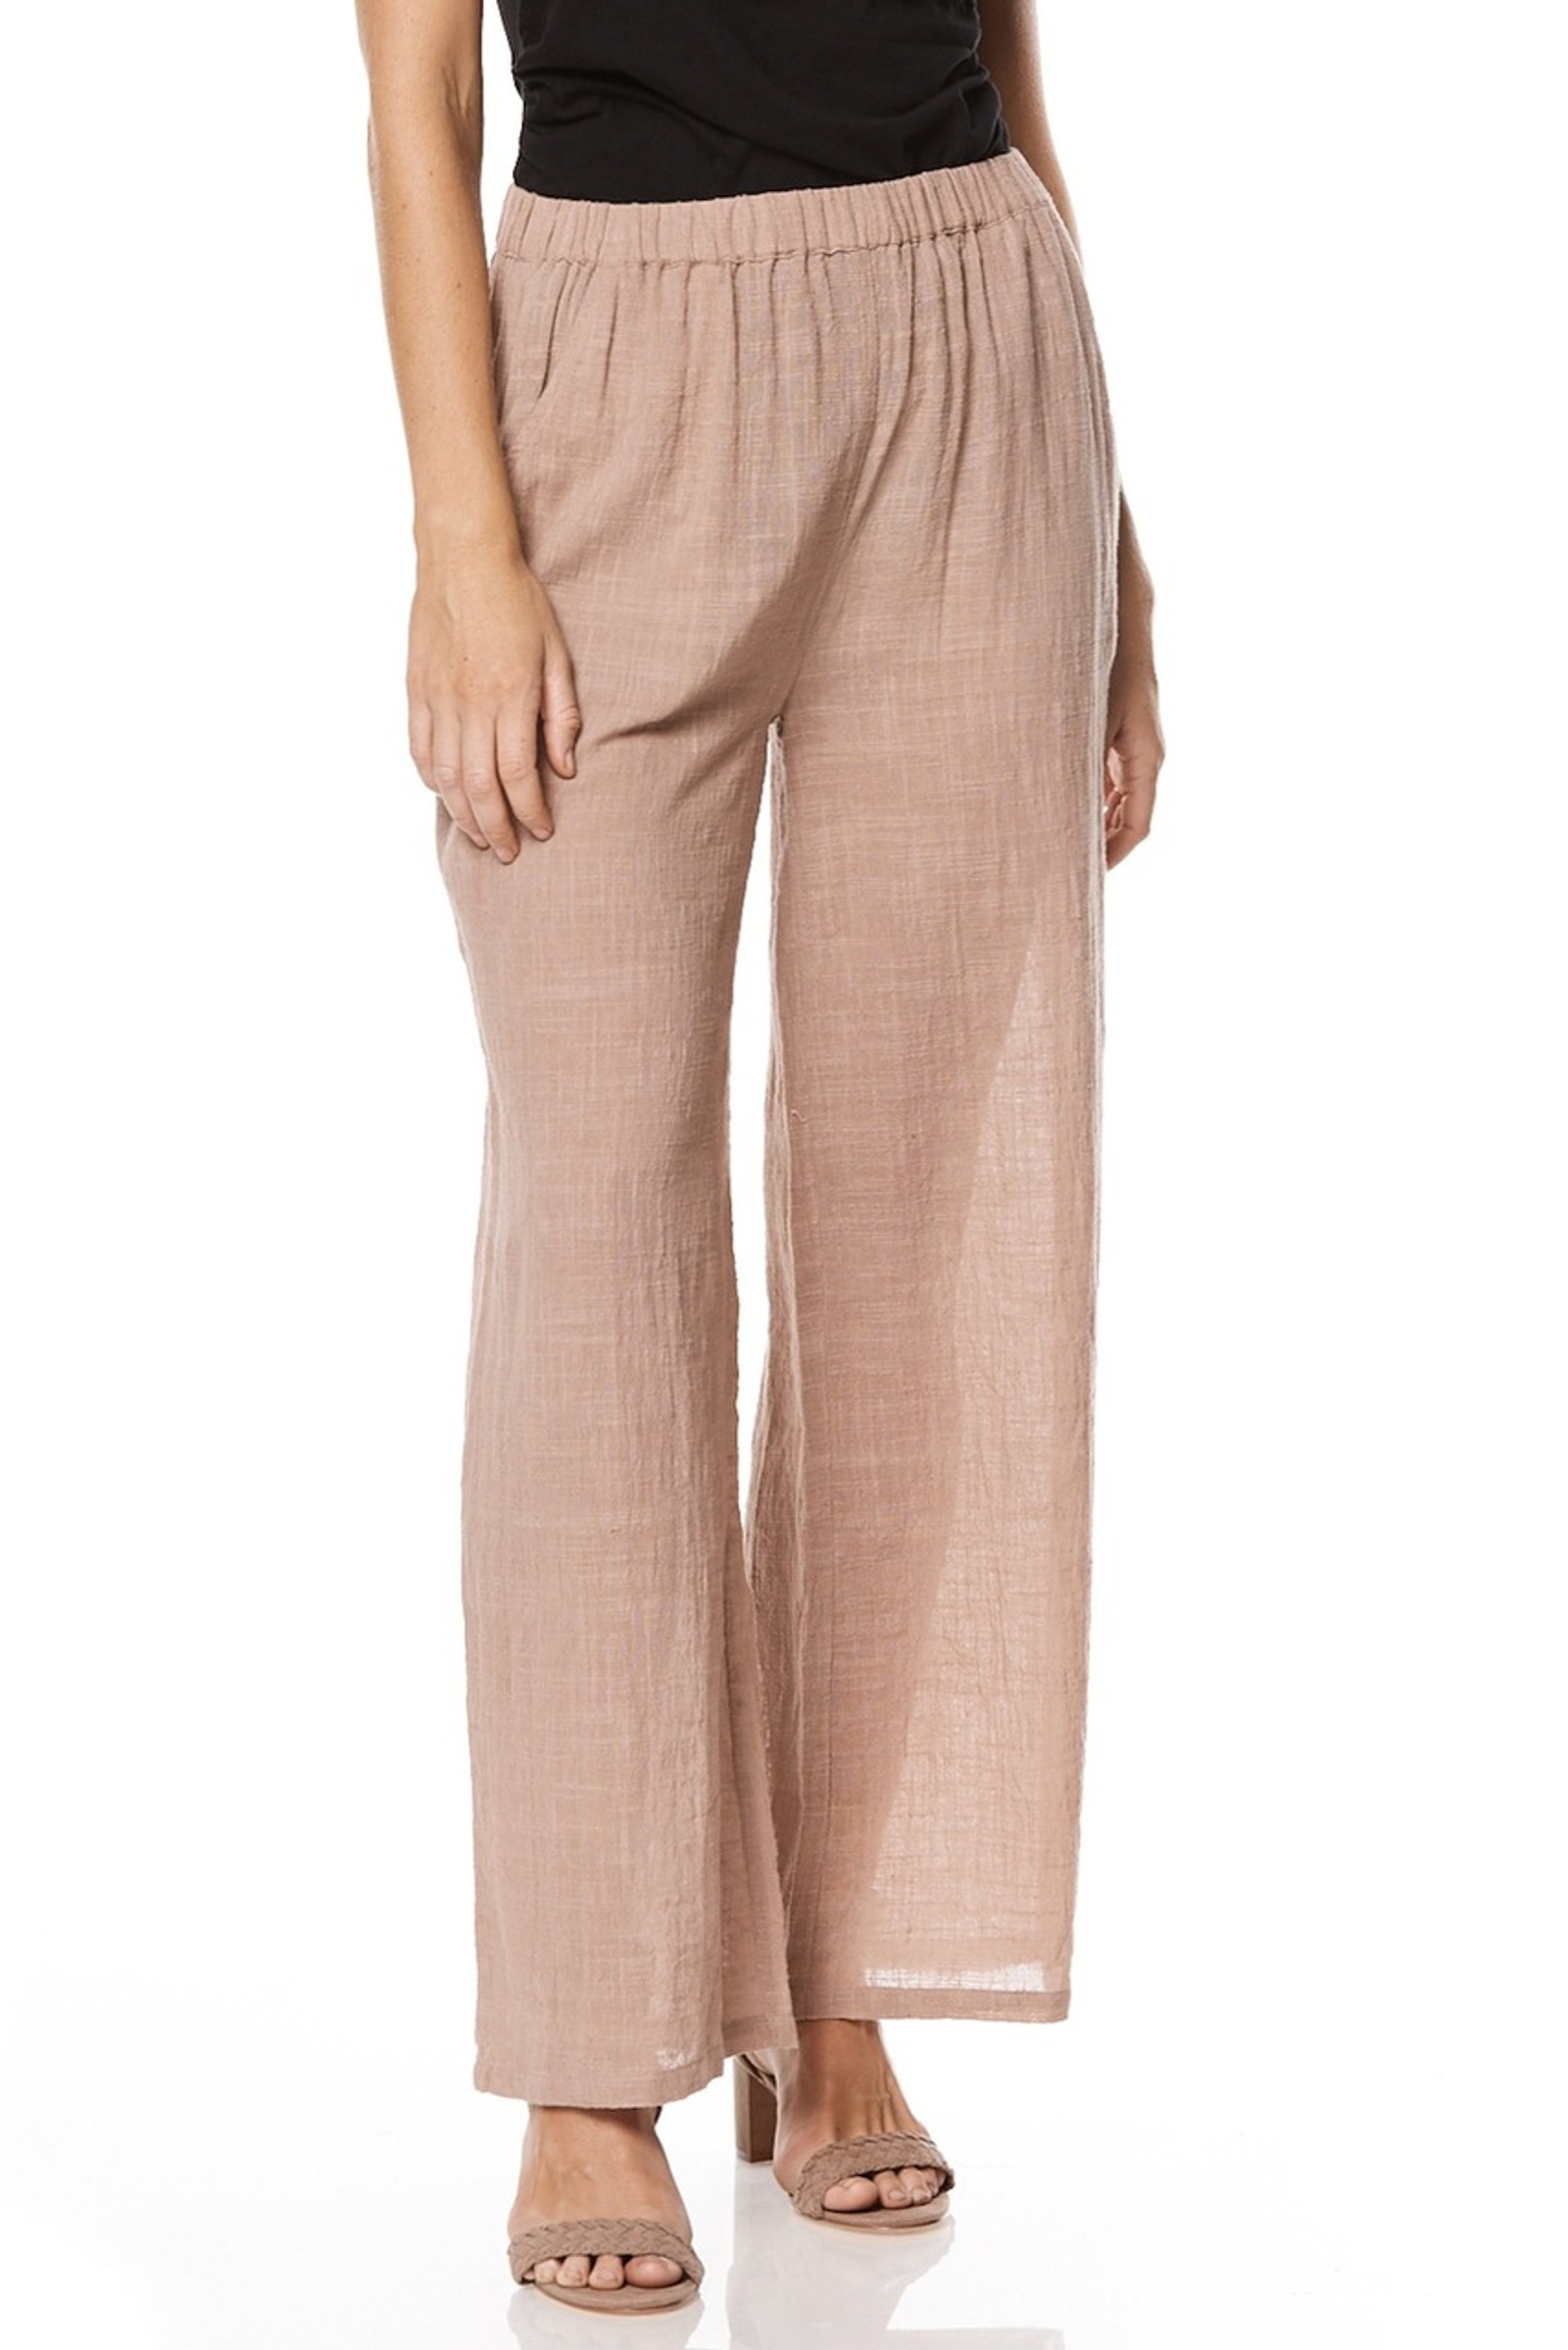 Anika Trouser - Dusty Pink